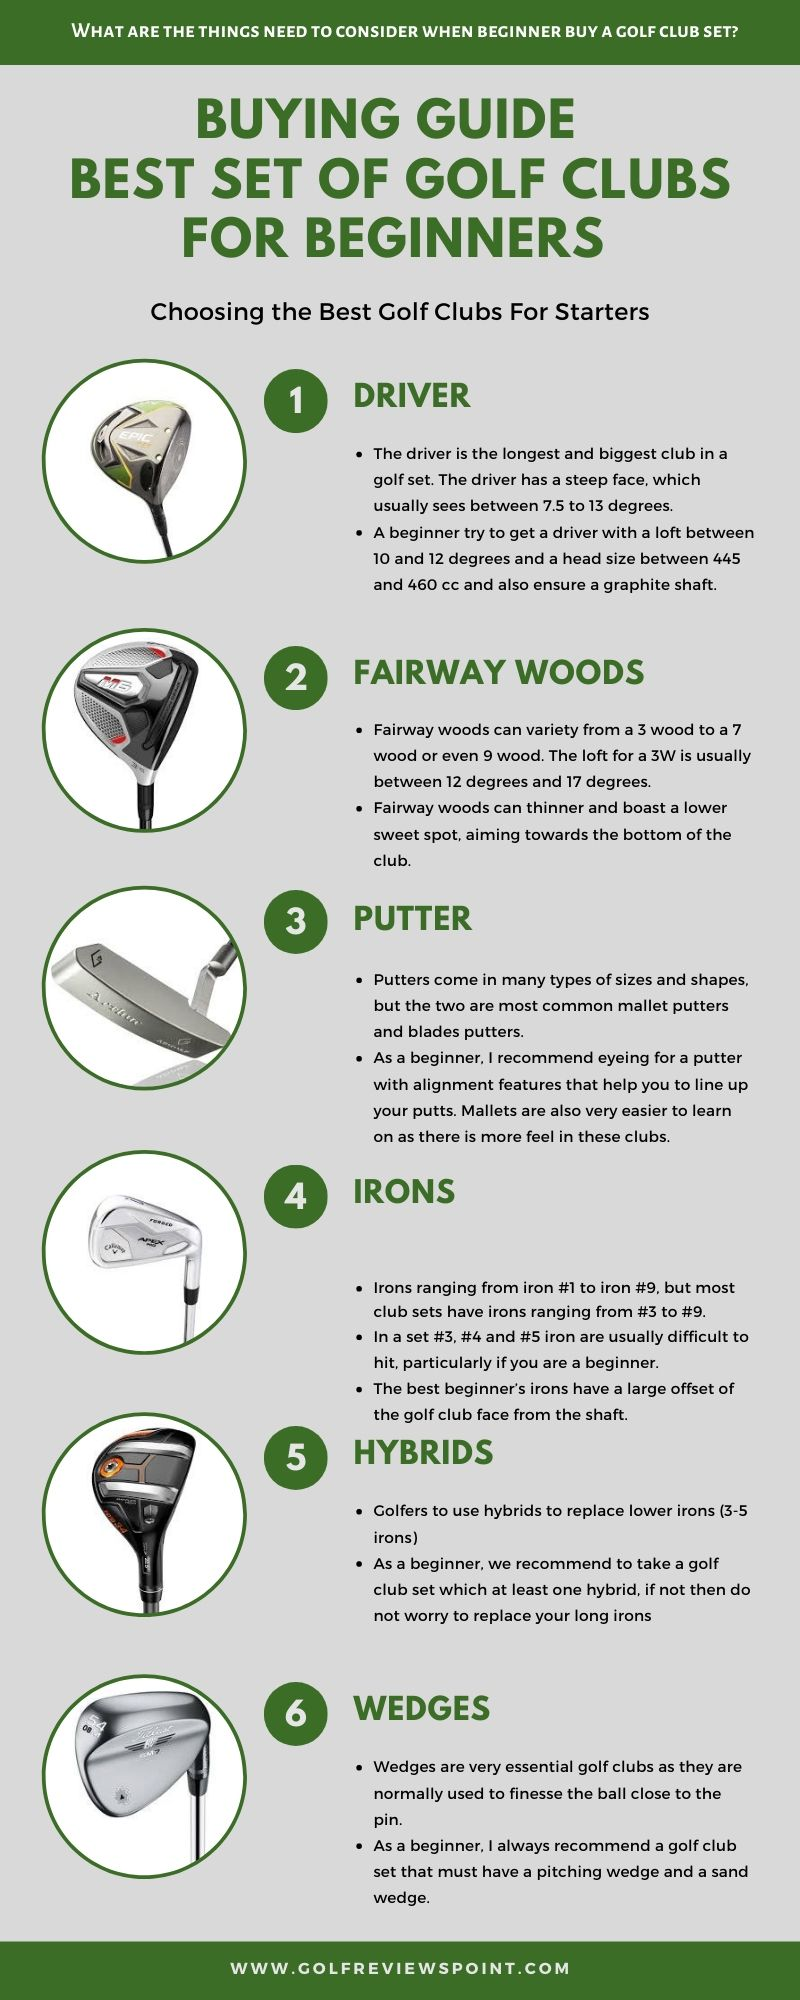 Buying Guides of Different Golf Equipment (Golf Rangefinder, Golf Push Carts, Golf Clubs,  Travel Bags, Golf Shoes)